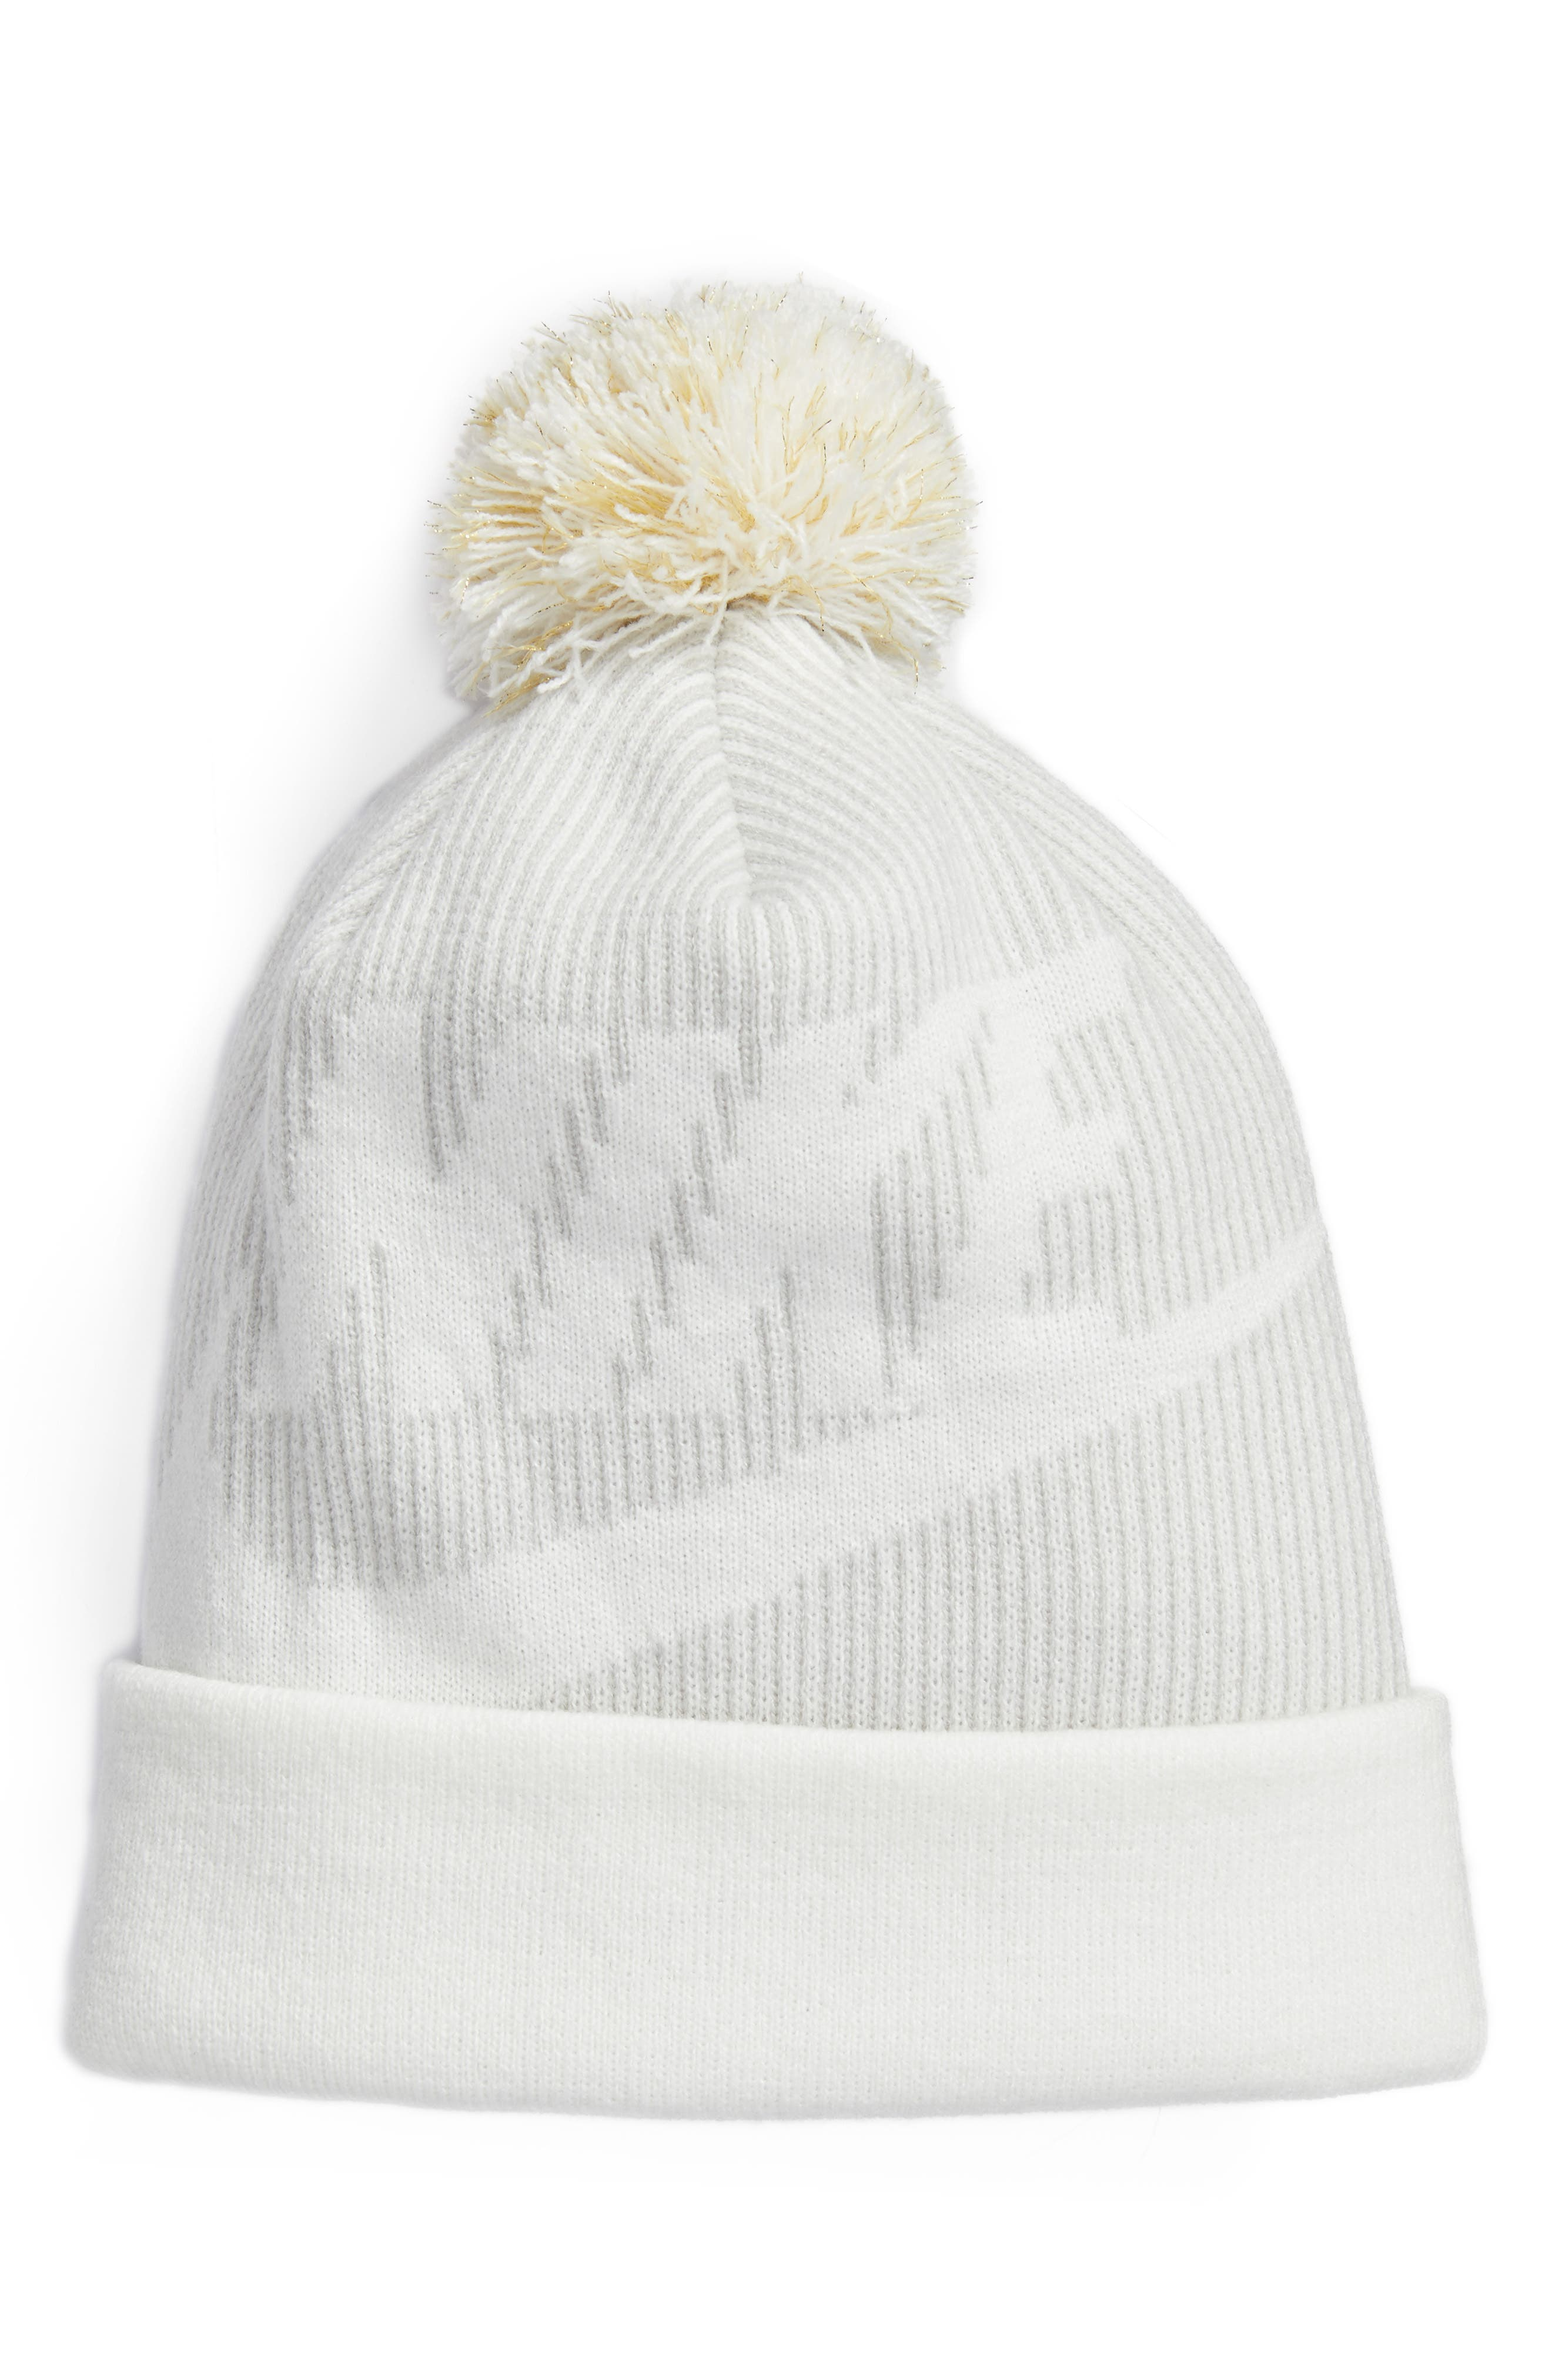 Nike Sportswear Beanie with Removable Pom